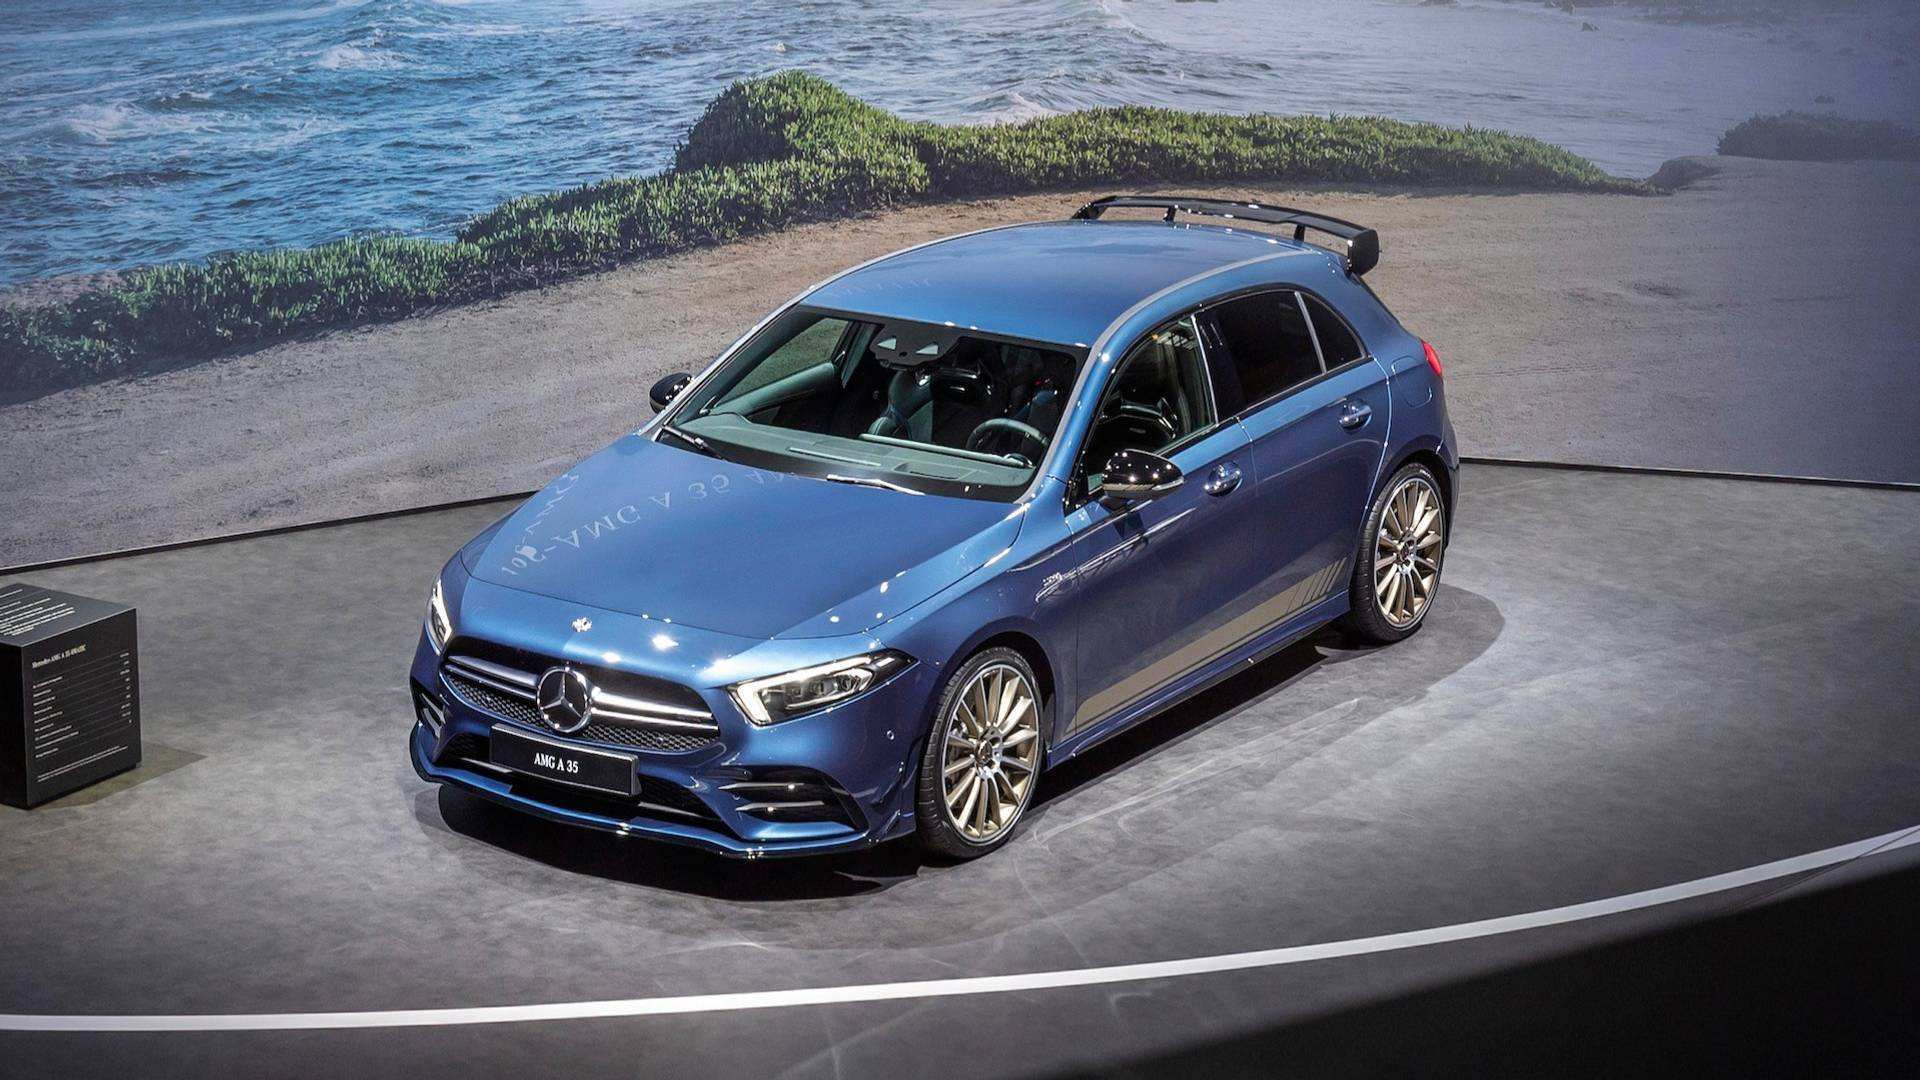 99 The Best 2019 Mercedes Hatchback Pictures